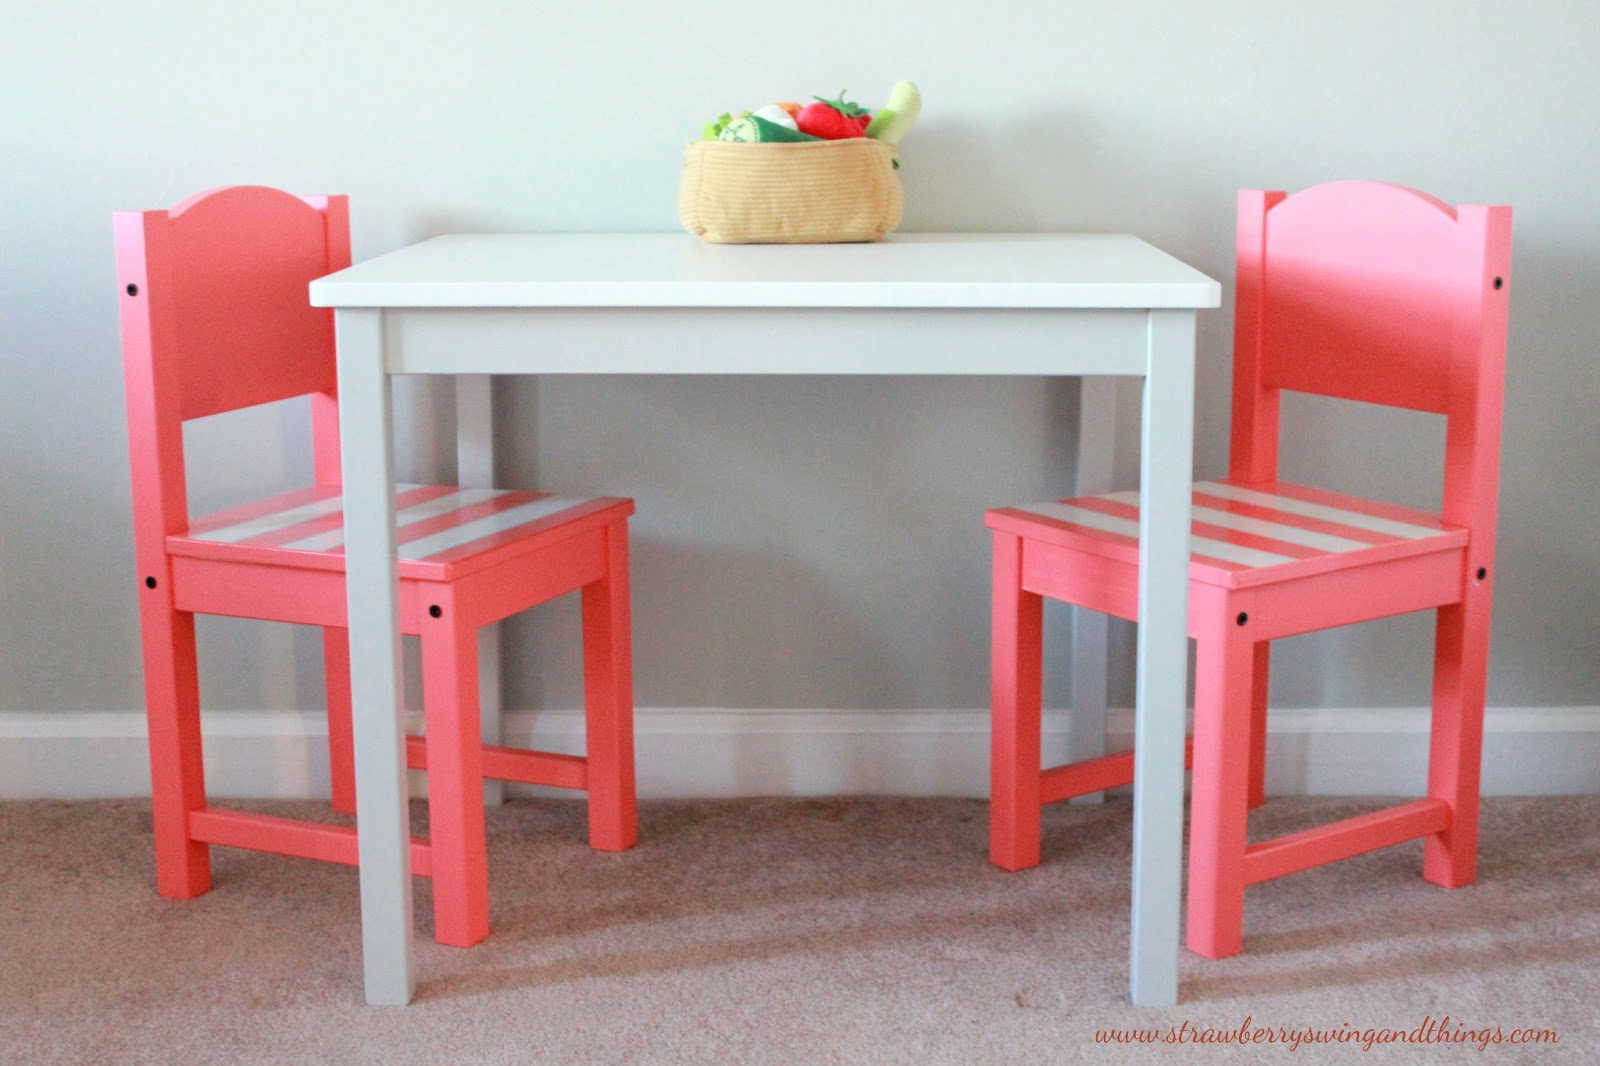 Ikea Toddler Chair Ergonomic Computer Chairs Strawberry Swing And Other Things Crafty Lady Children